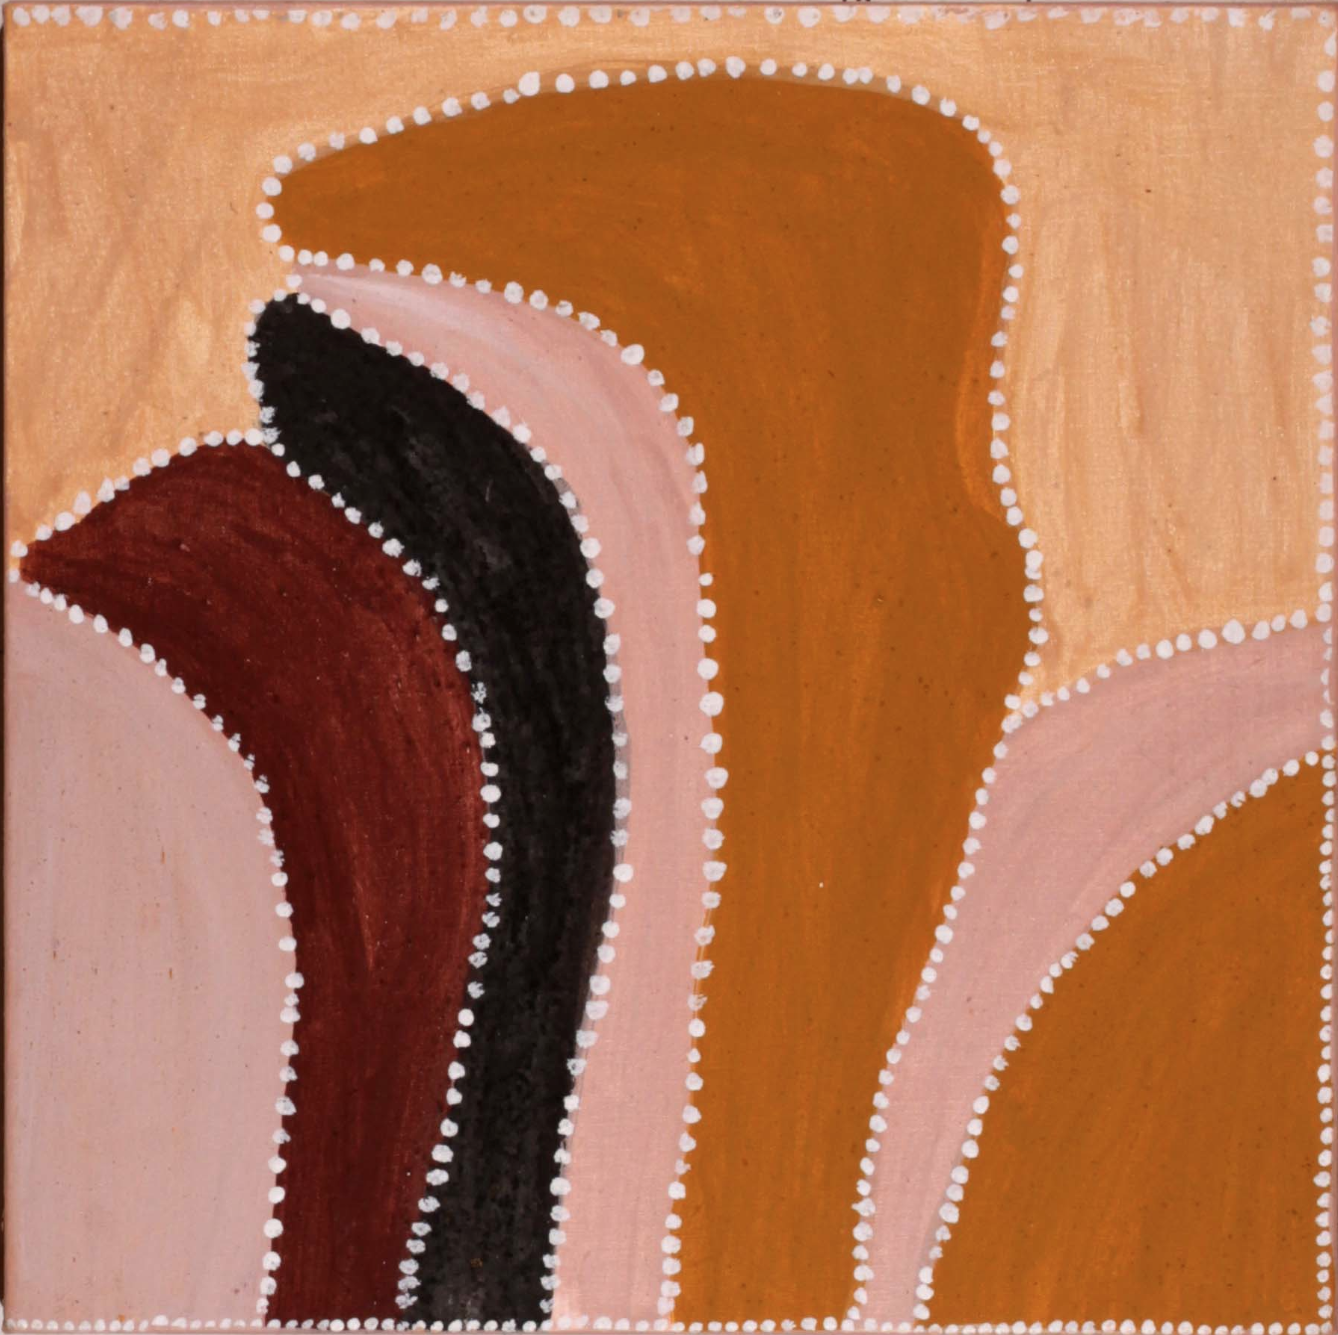 Peggy Patrick, Loomoogoo Ngarranggarni. 2015.Natural ochres and pigments on canvas. 60 x 60 cm. SOLD